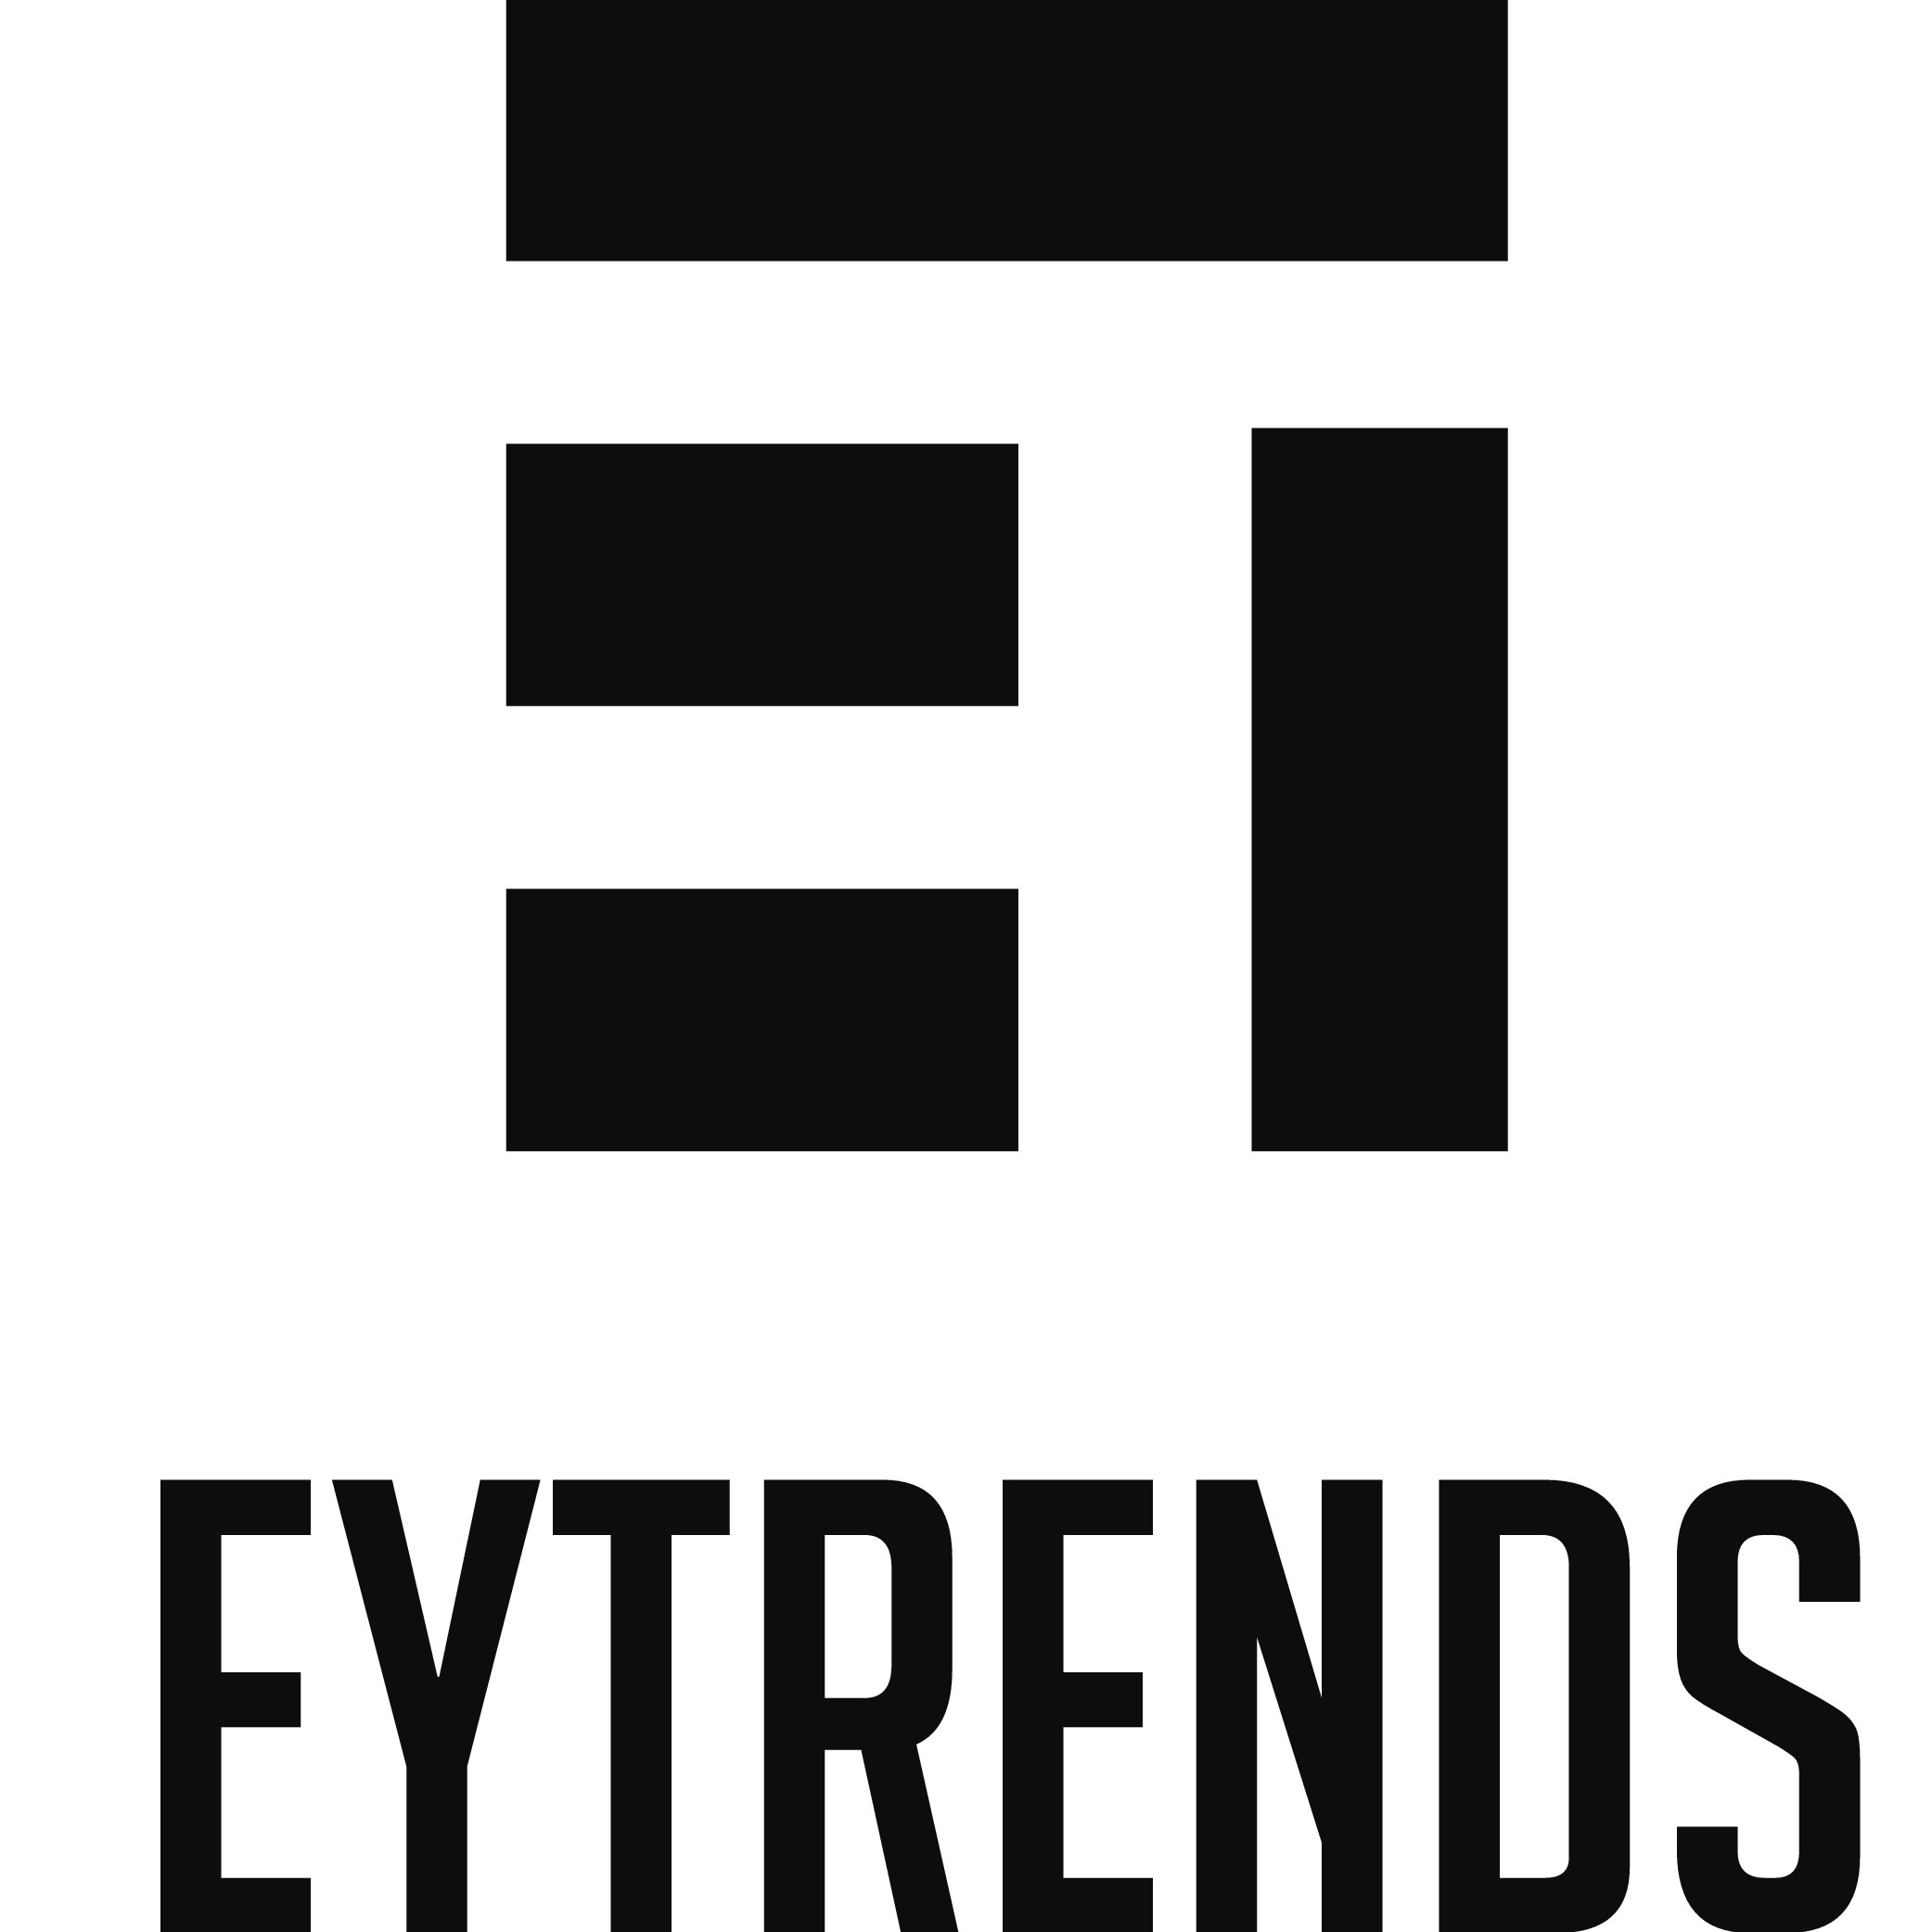 I'm looking for a fashion-logo for my label